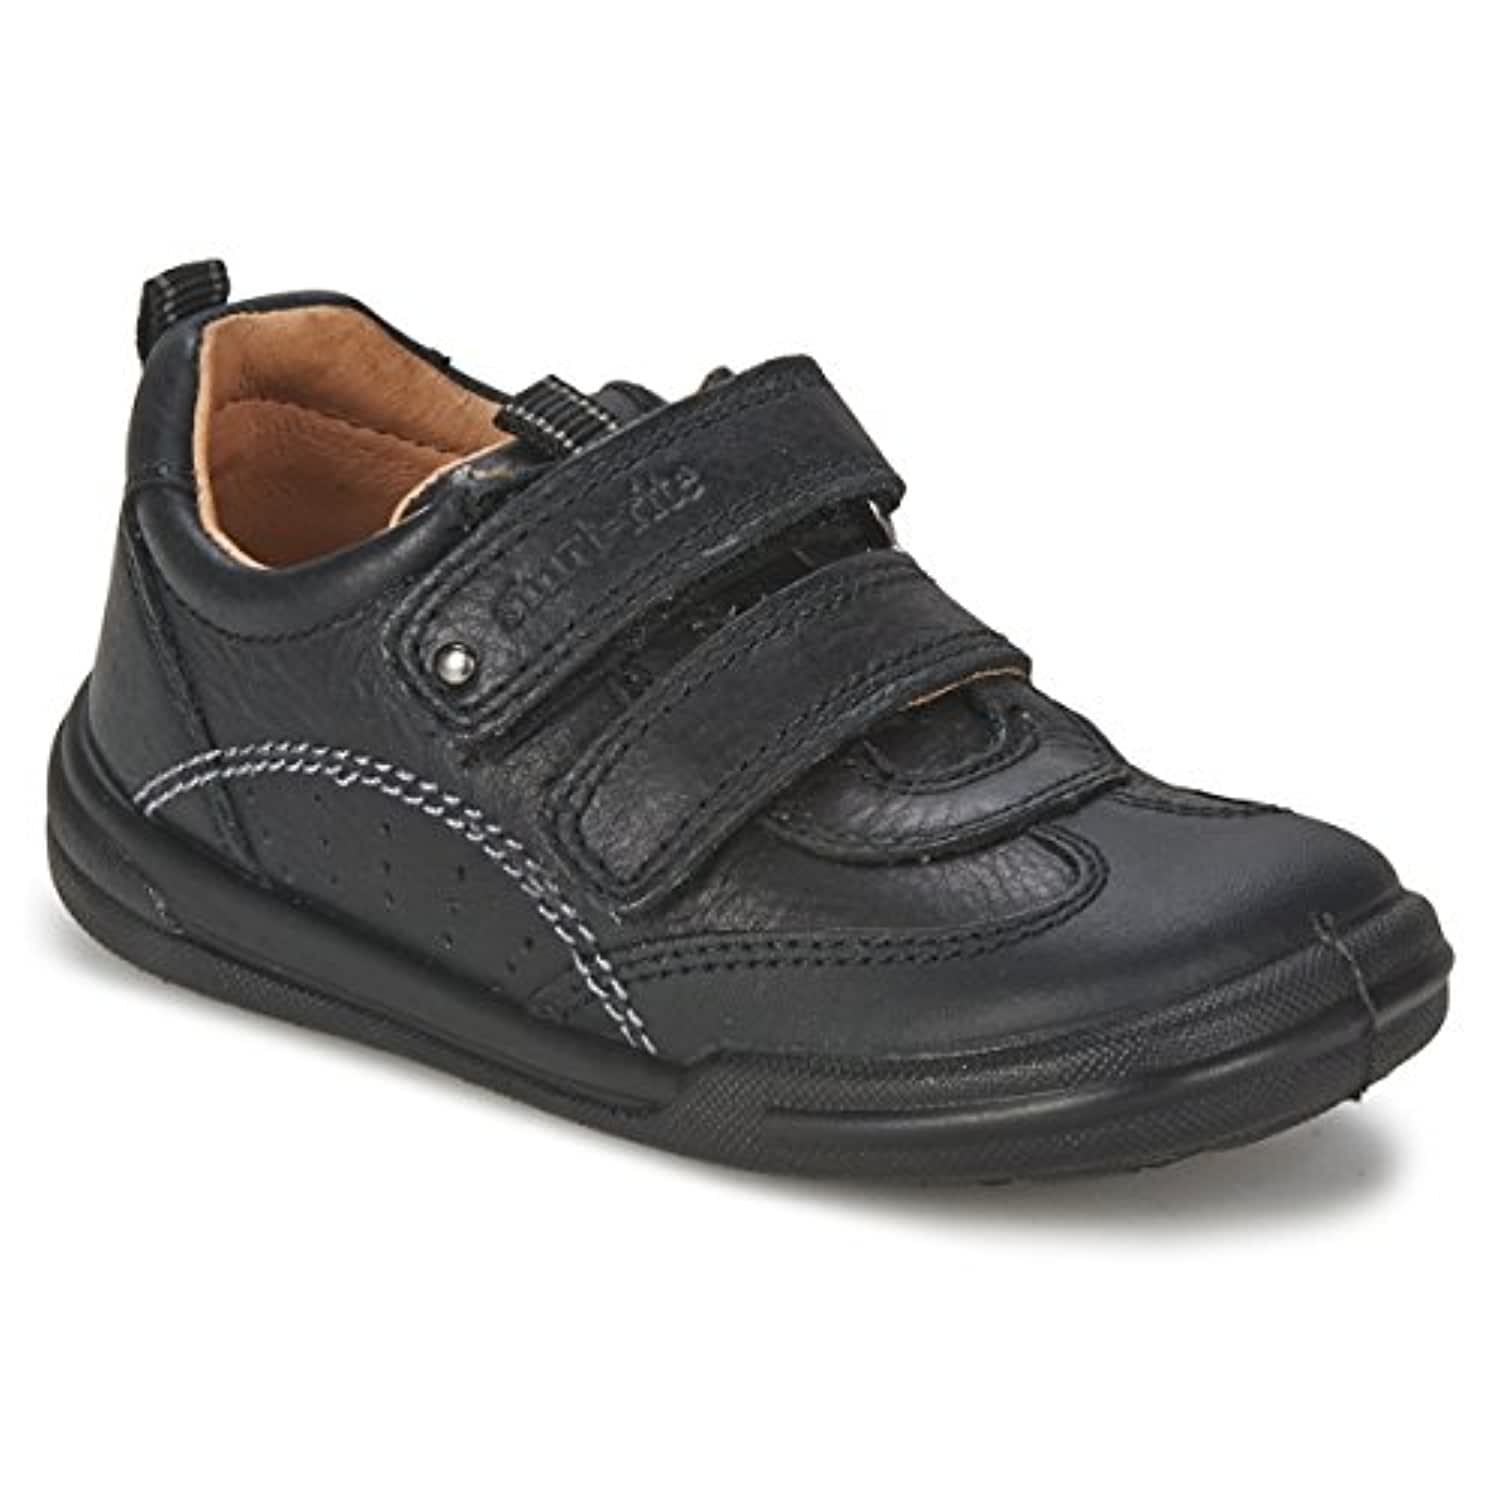 Boys Start-rite Leather Shoes With Double Velcro - Flexy-soft Air Black Size 5.5 F